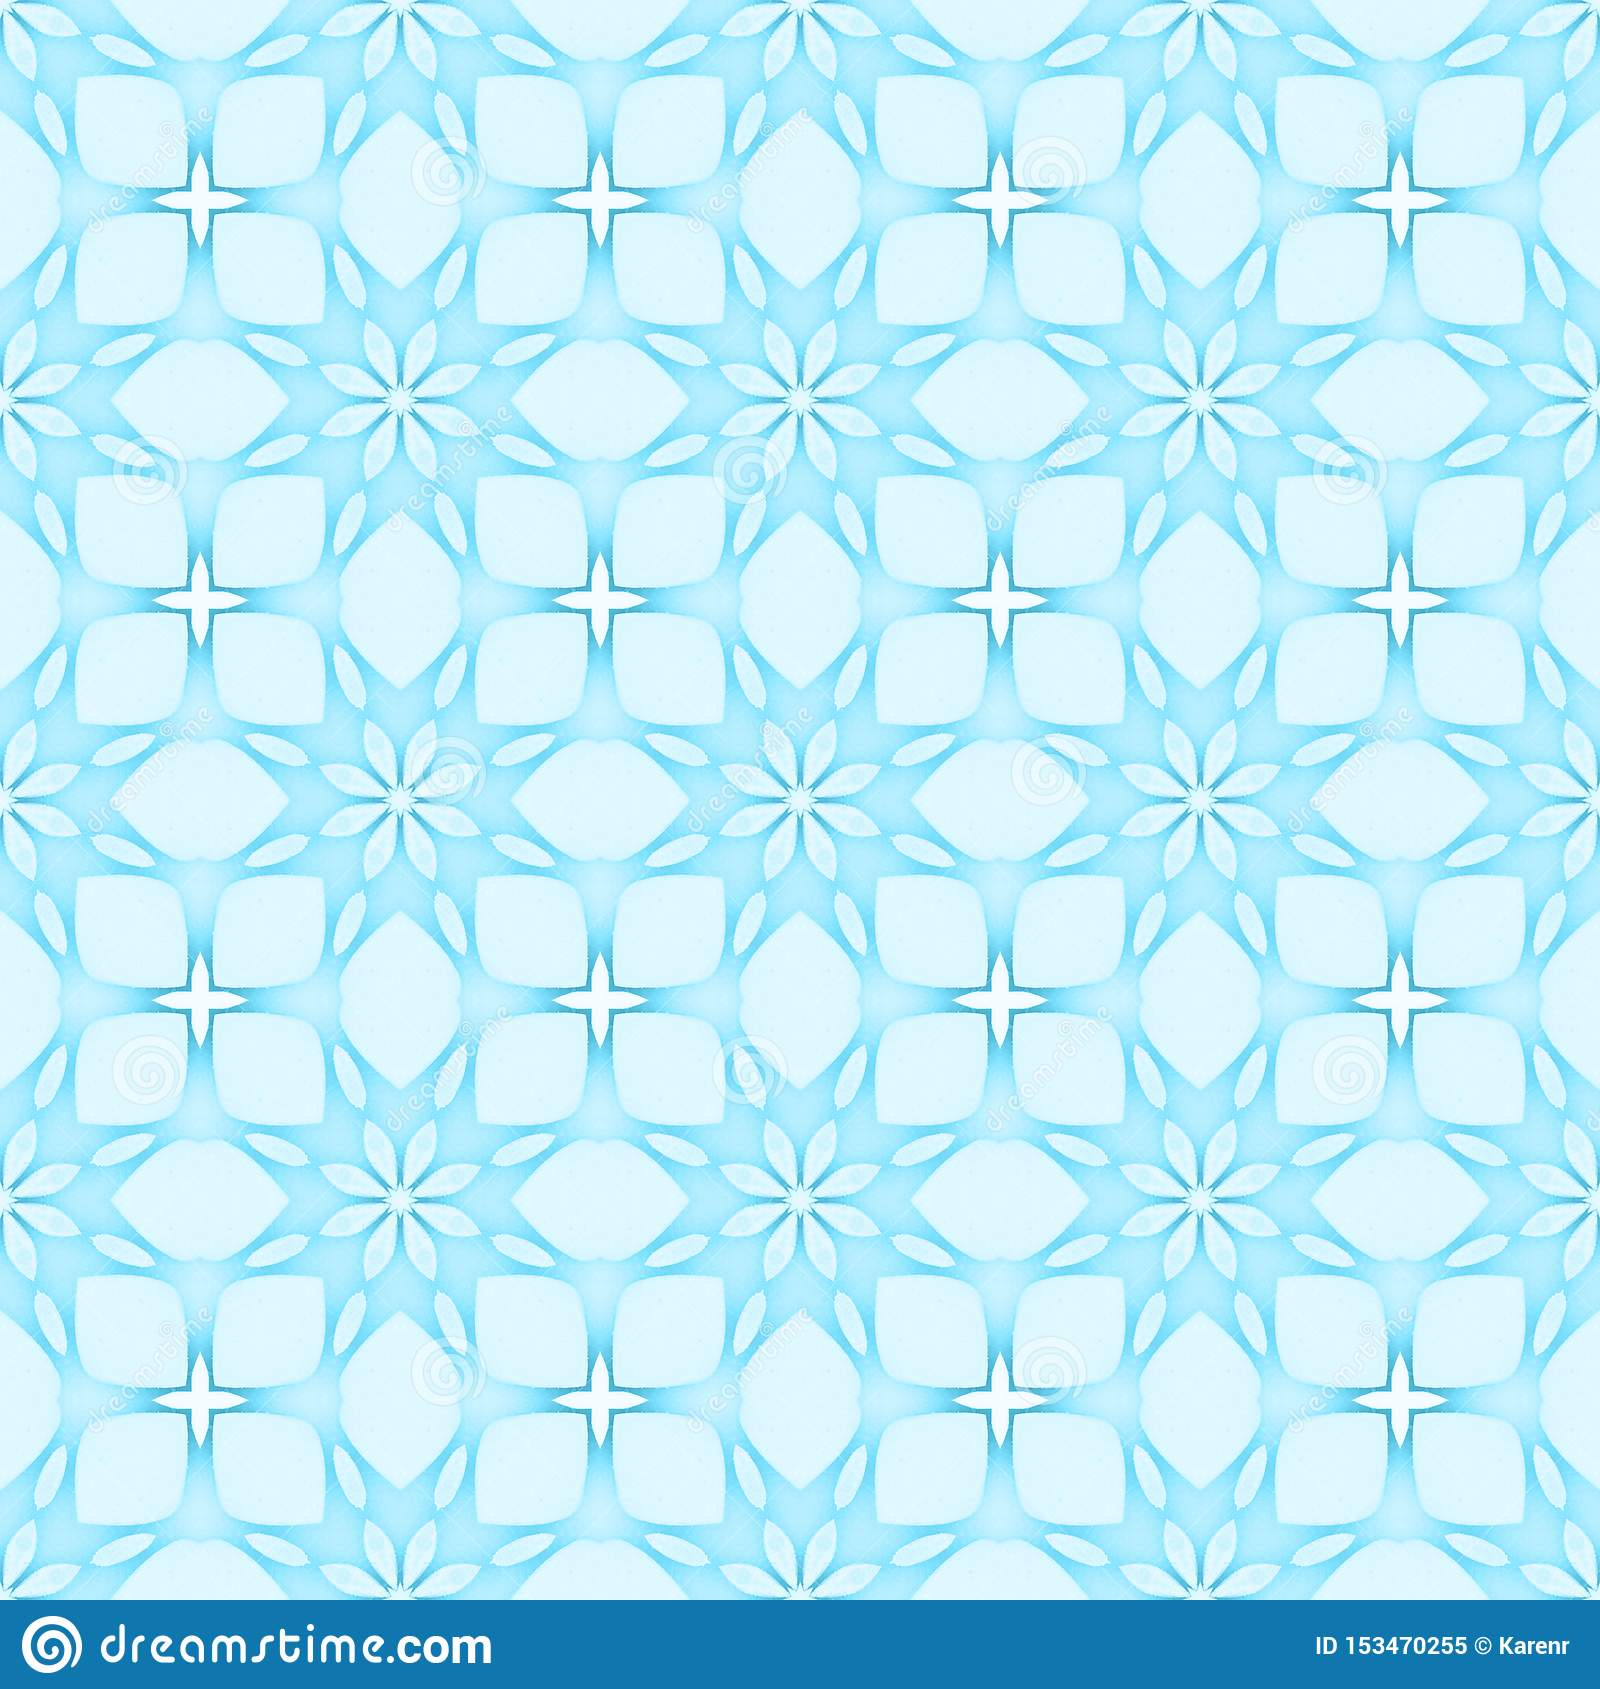 Pale blue flower mosaic detailed seamless textured pattern background